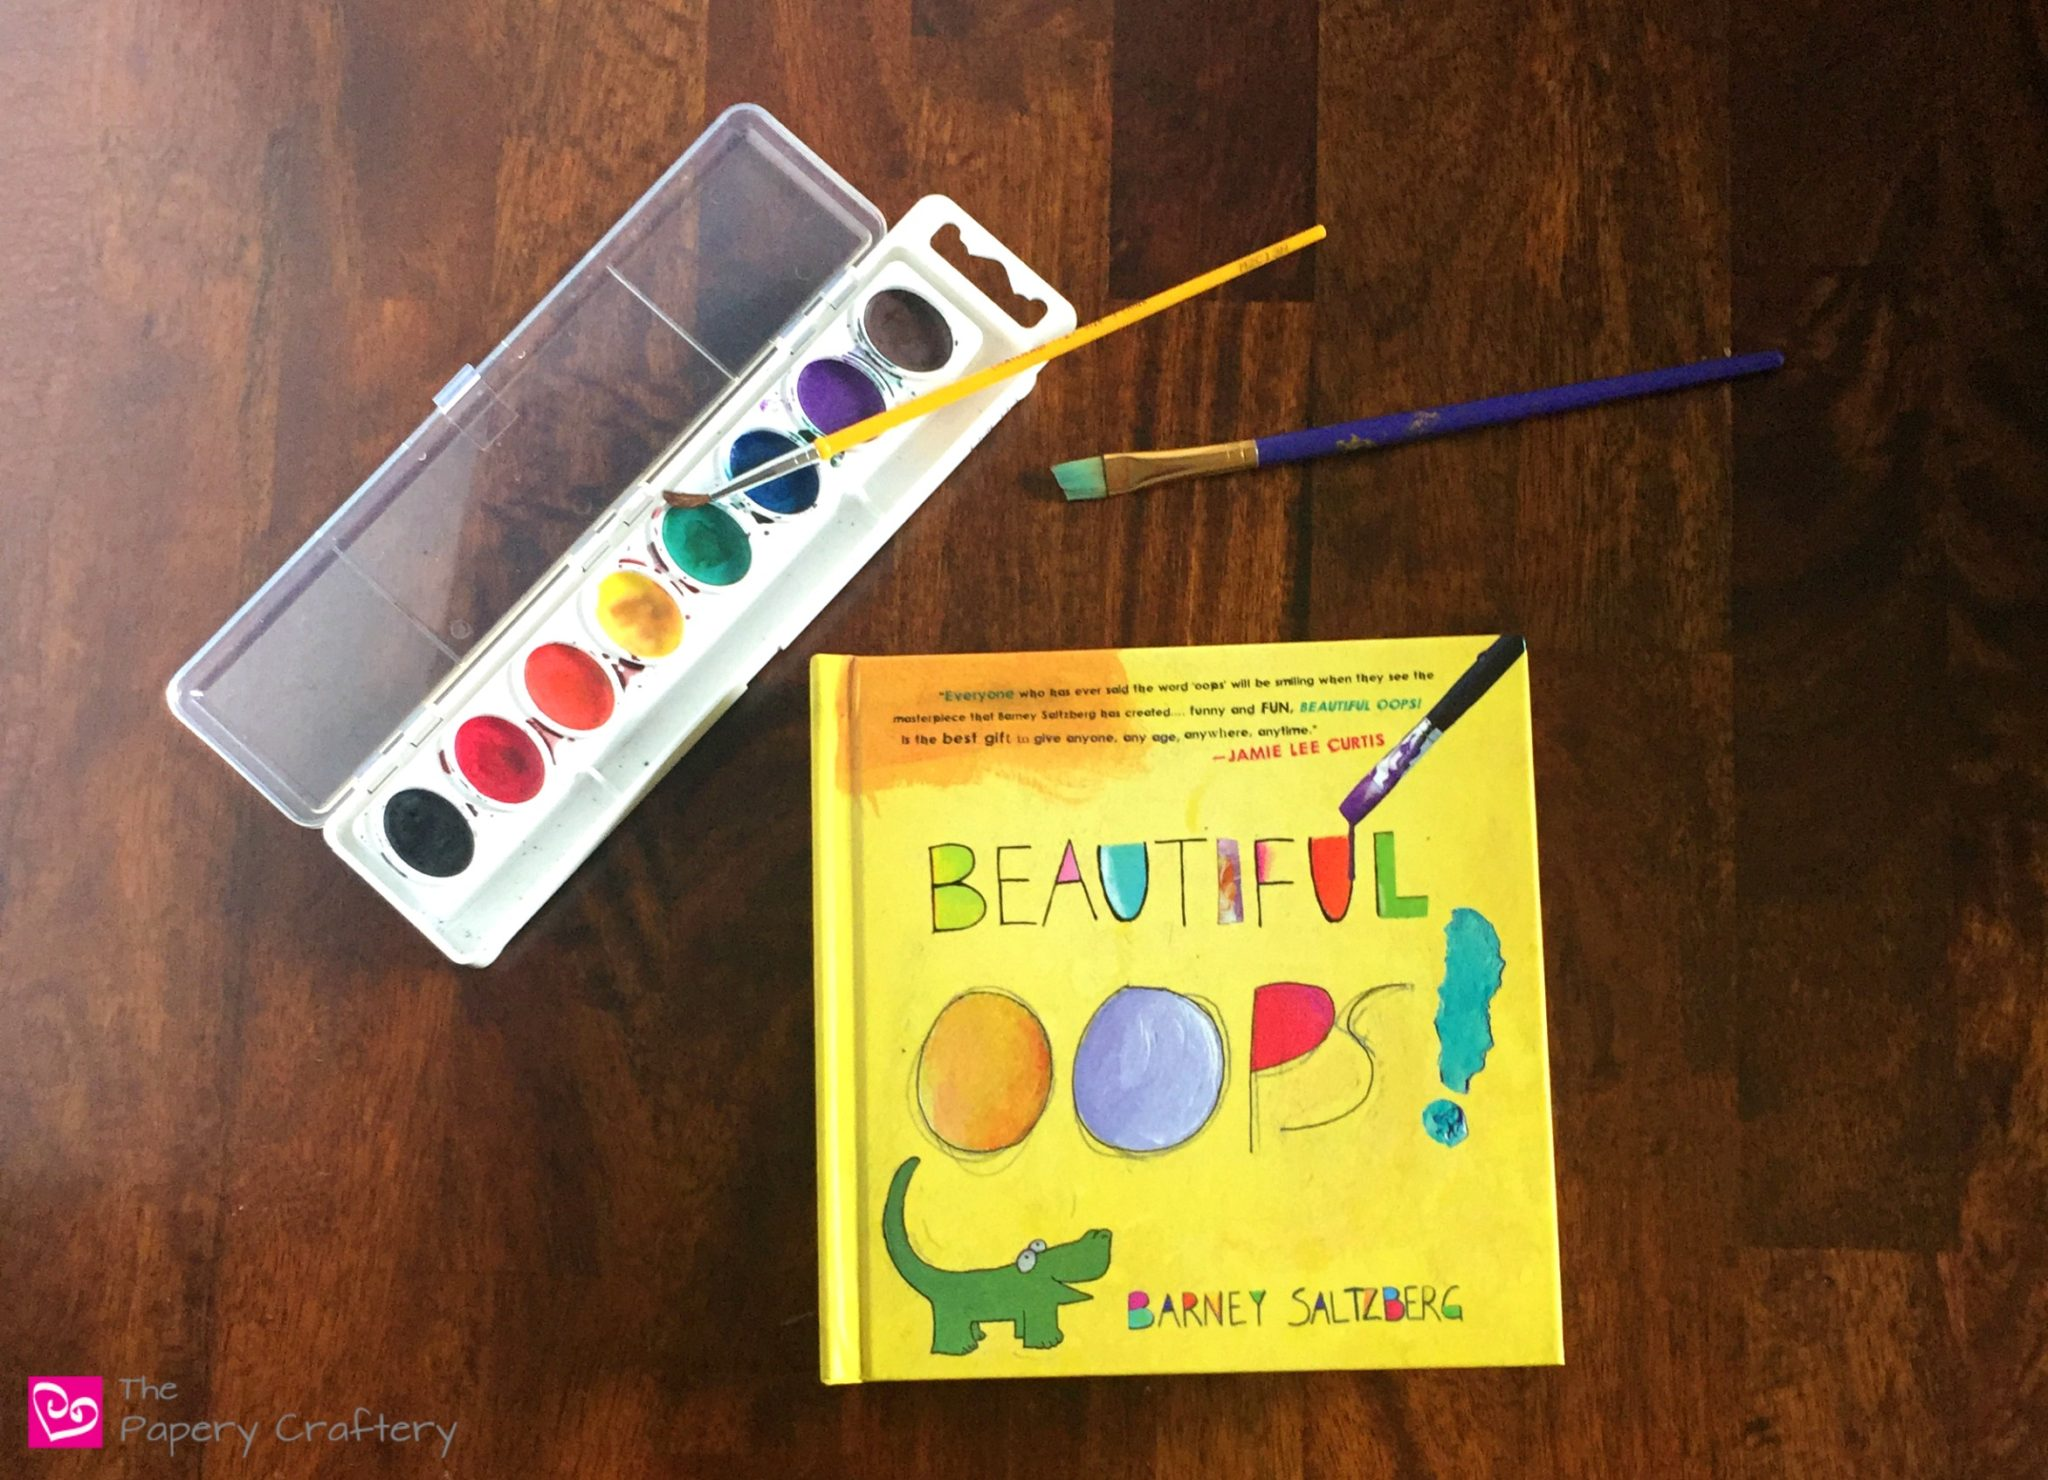 Beautiful Oops ~ An Art Book for Children. Stretch that imagination and see that no drip, drop or blotch is a mistake! || www.thepaperycraftery.com